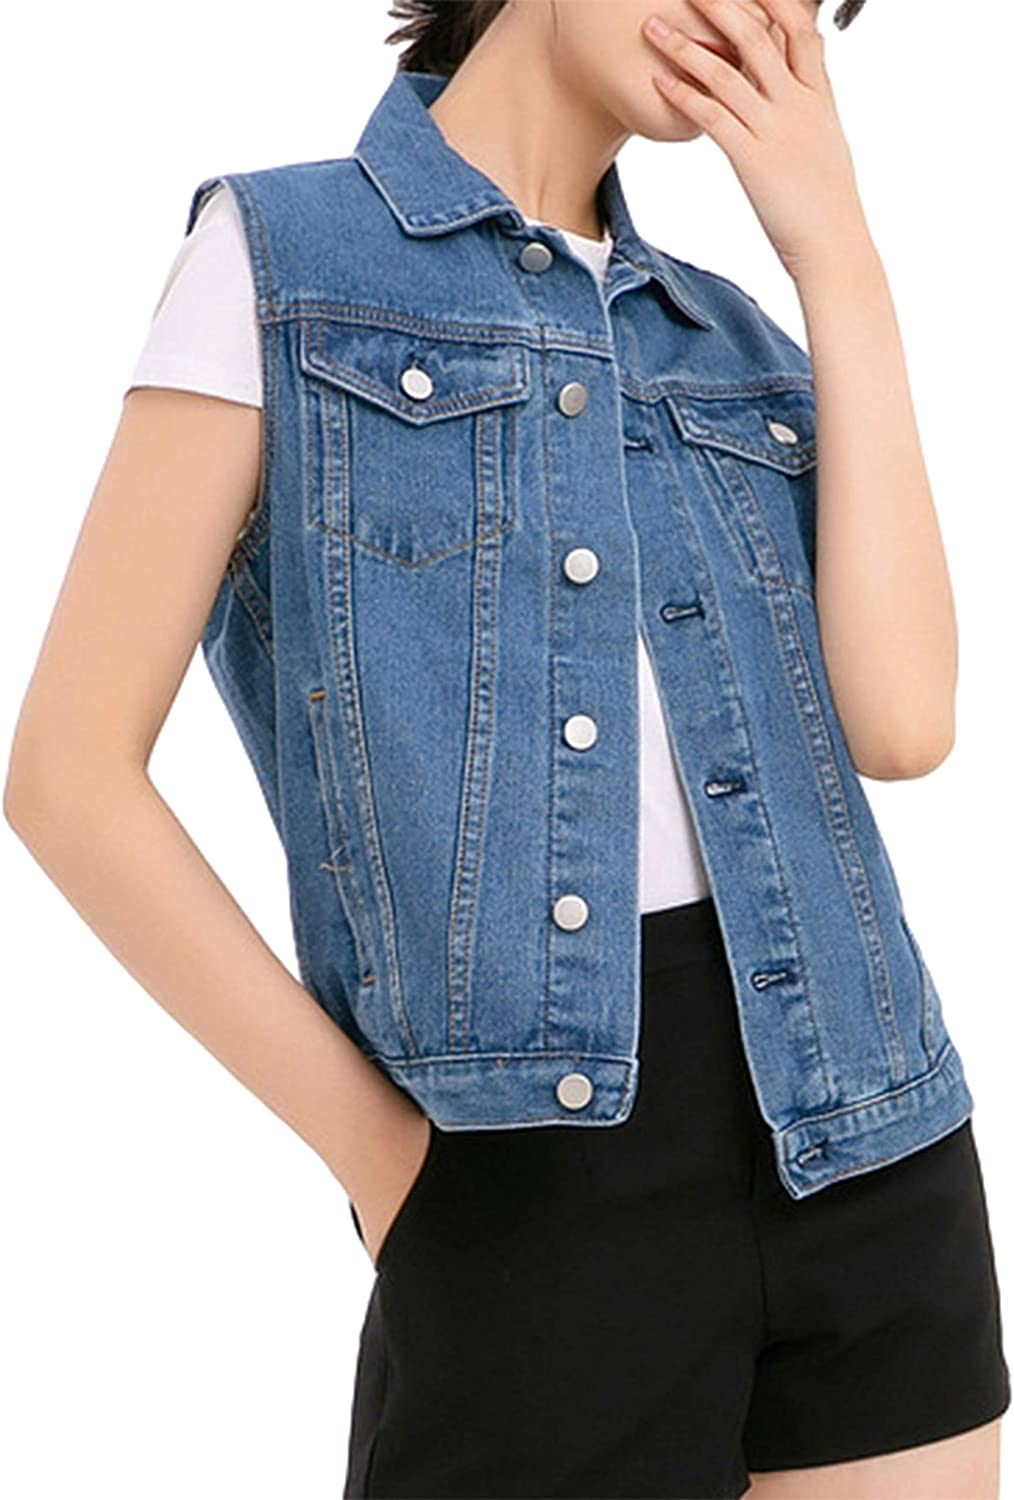 Himosyber Women's Casual Loose Button Washed Sleeveless Distressed Denim Vest Jacket